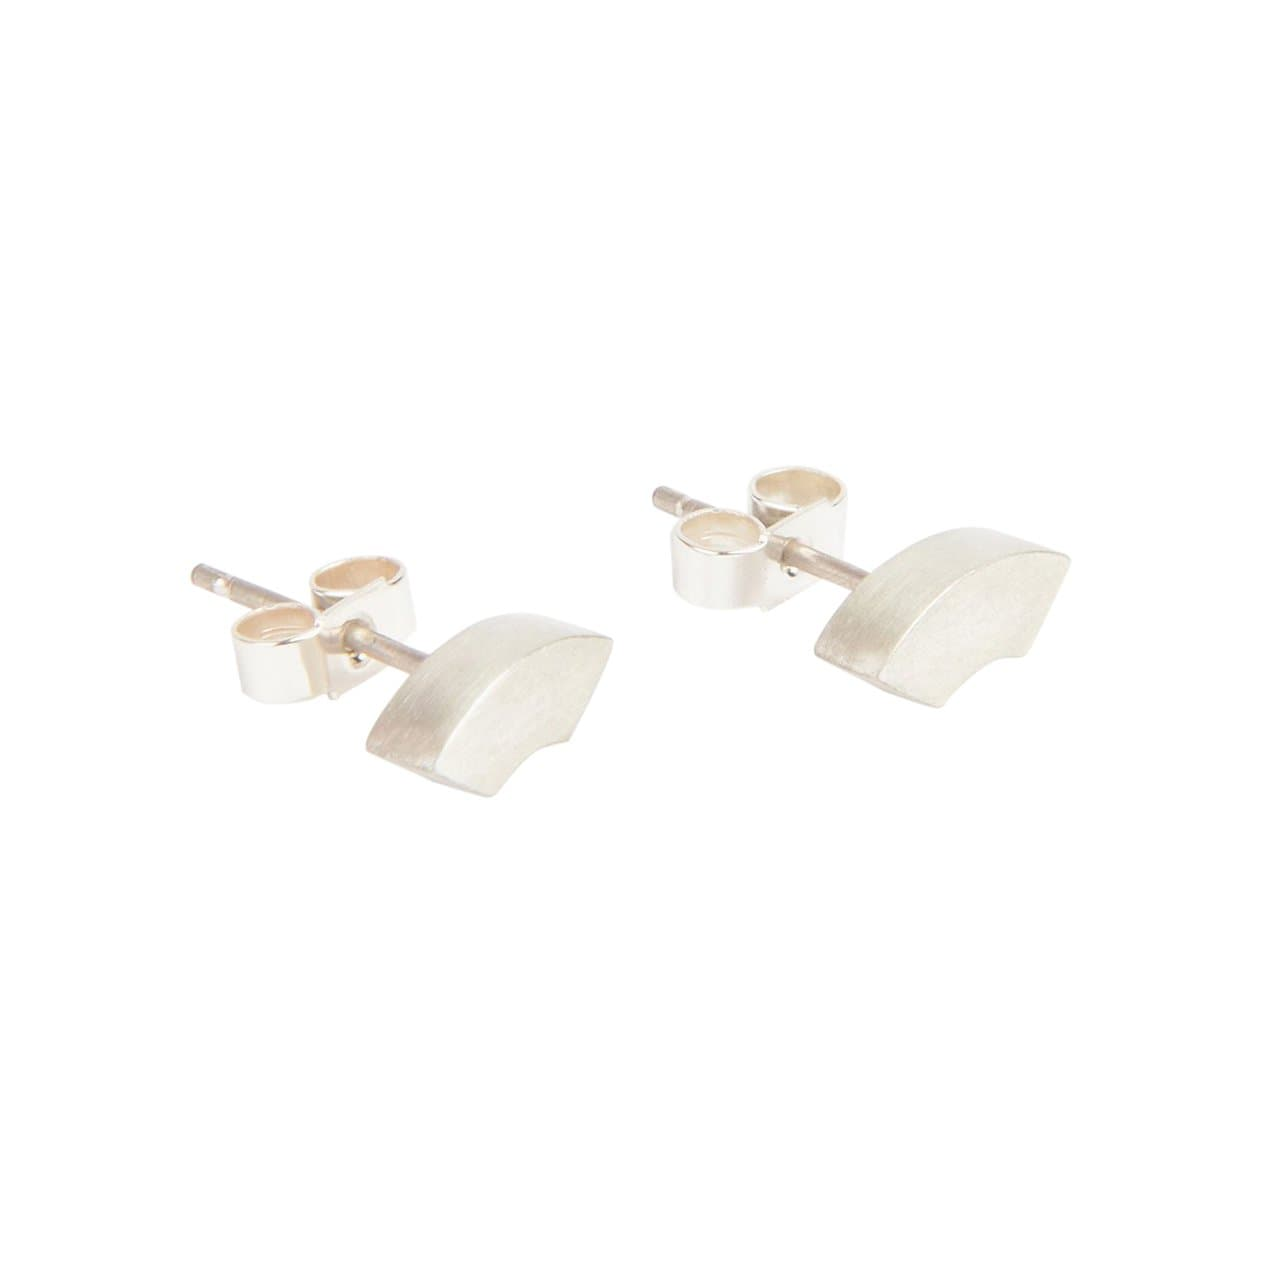 Tom Pigeon Earrings Béton Silver Arc Earrings